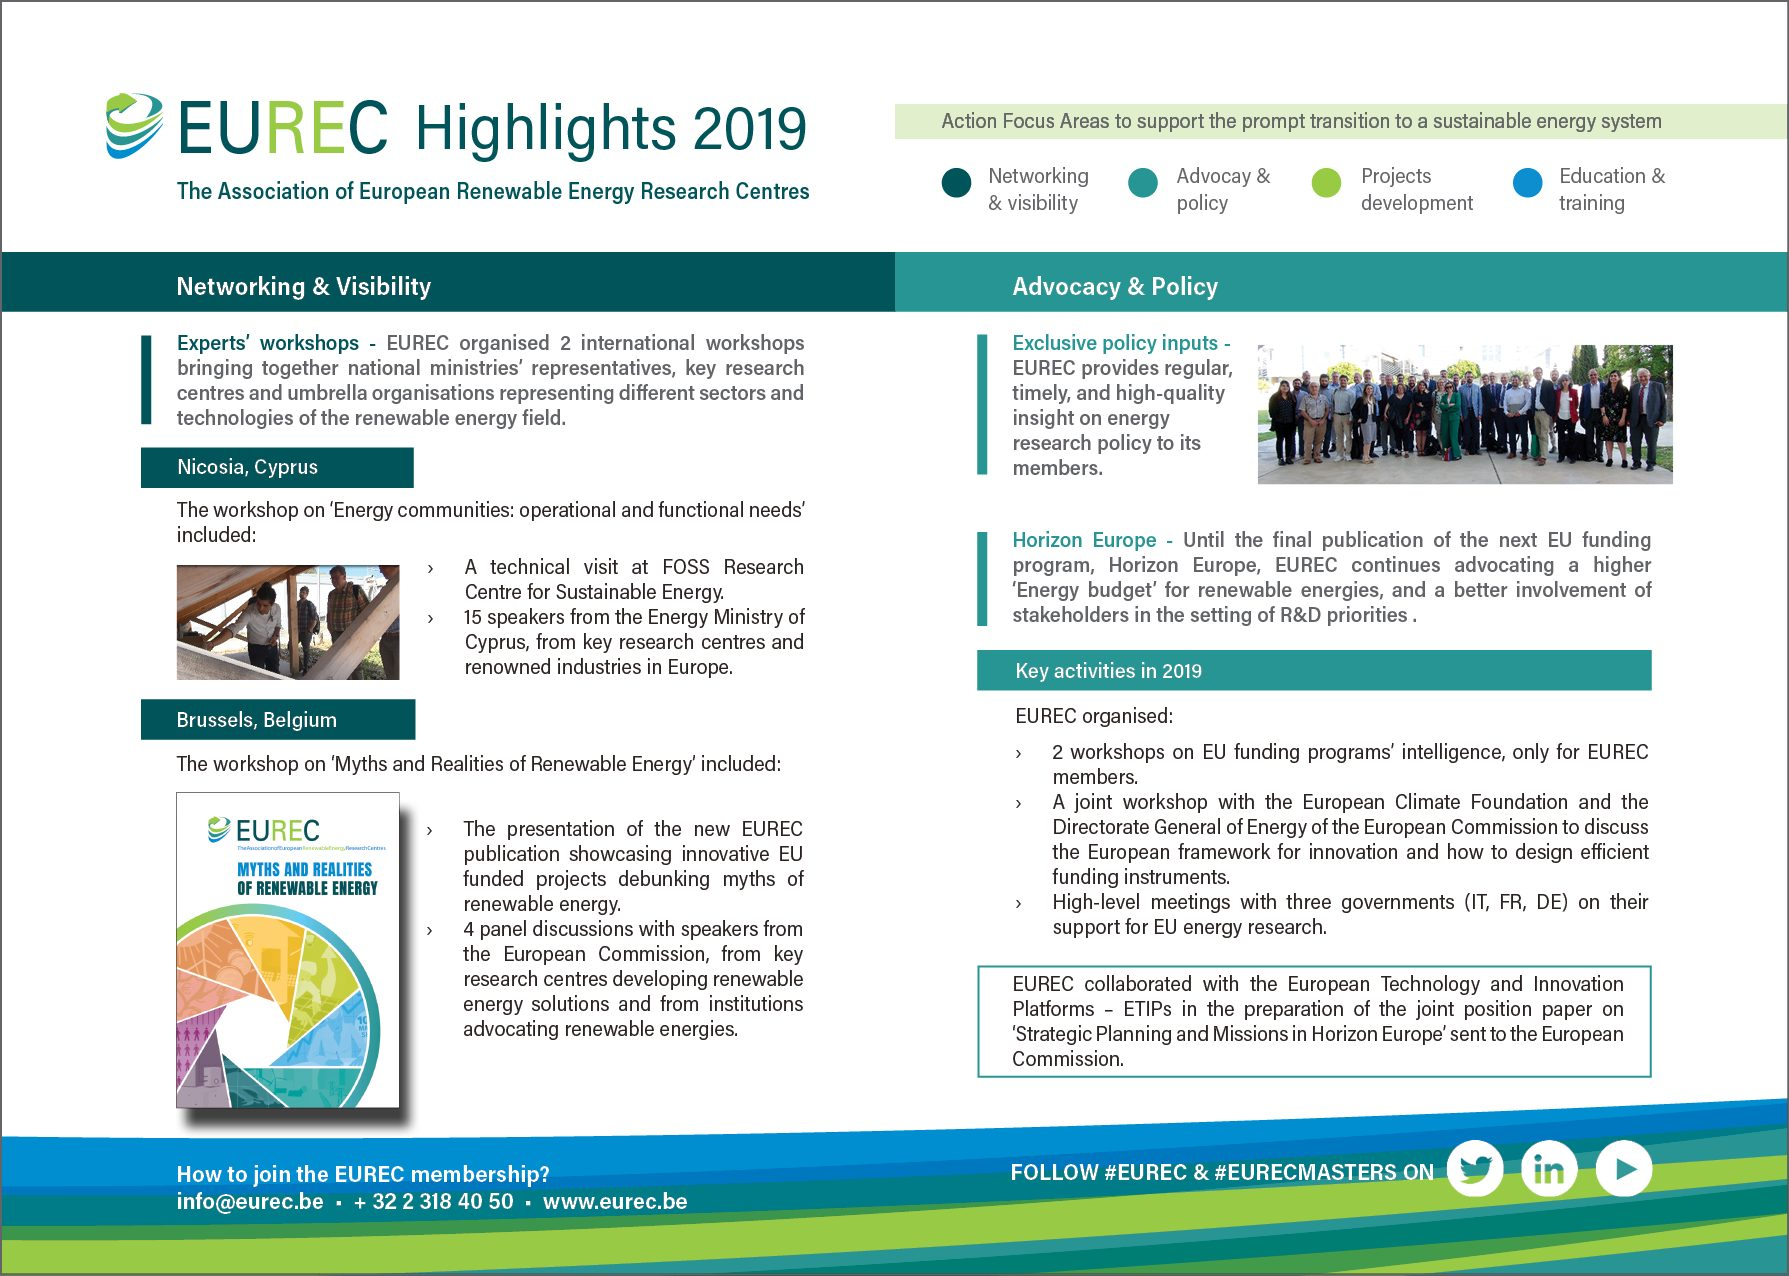 EUREC Highlights 2019